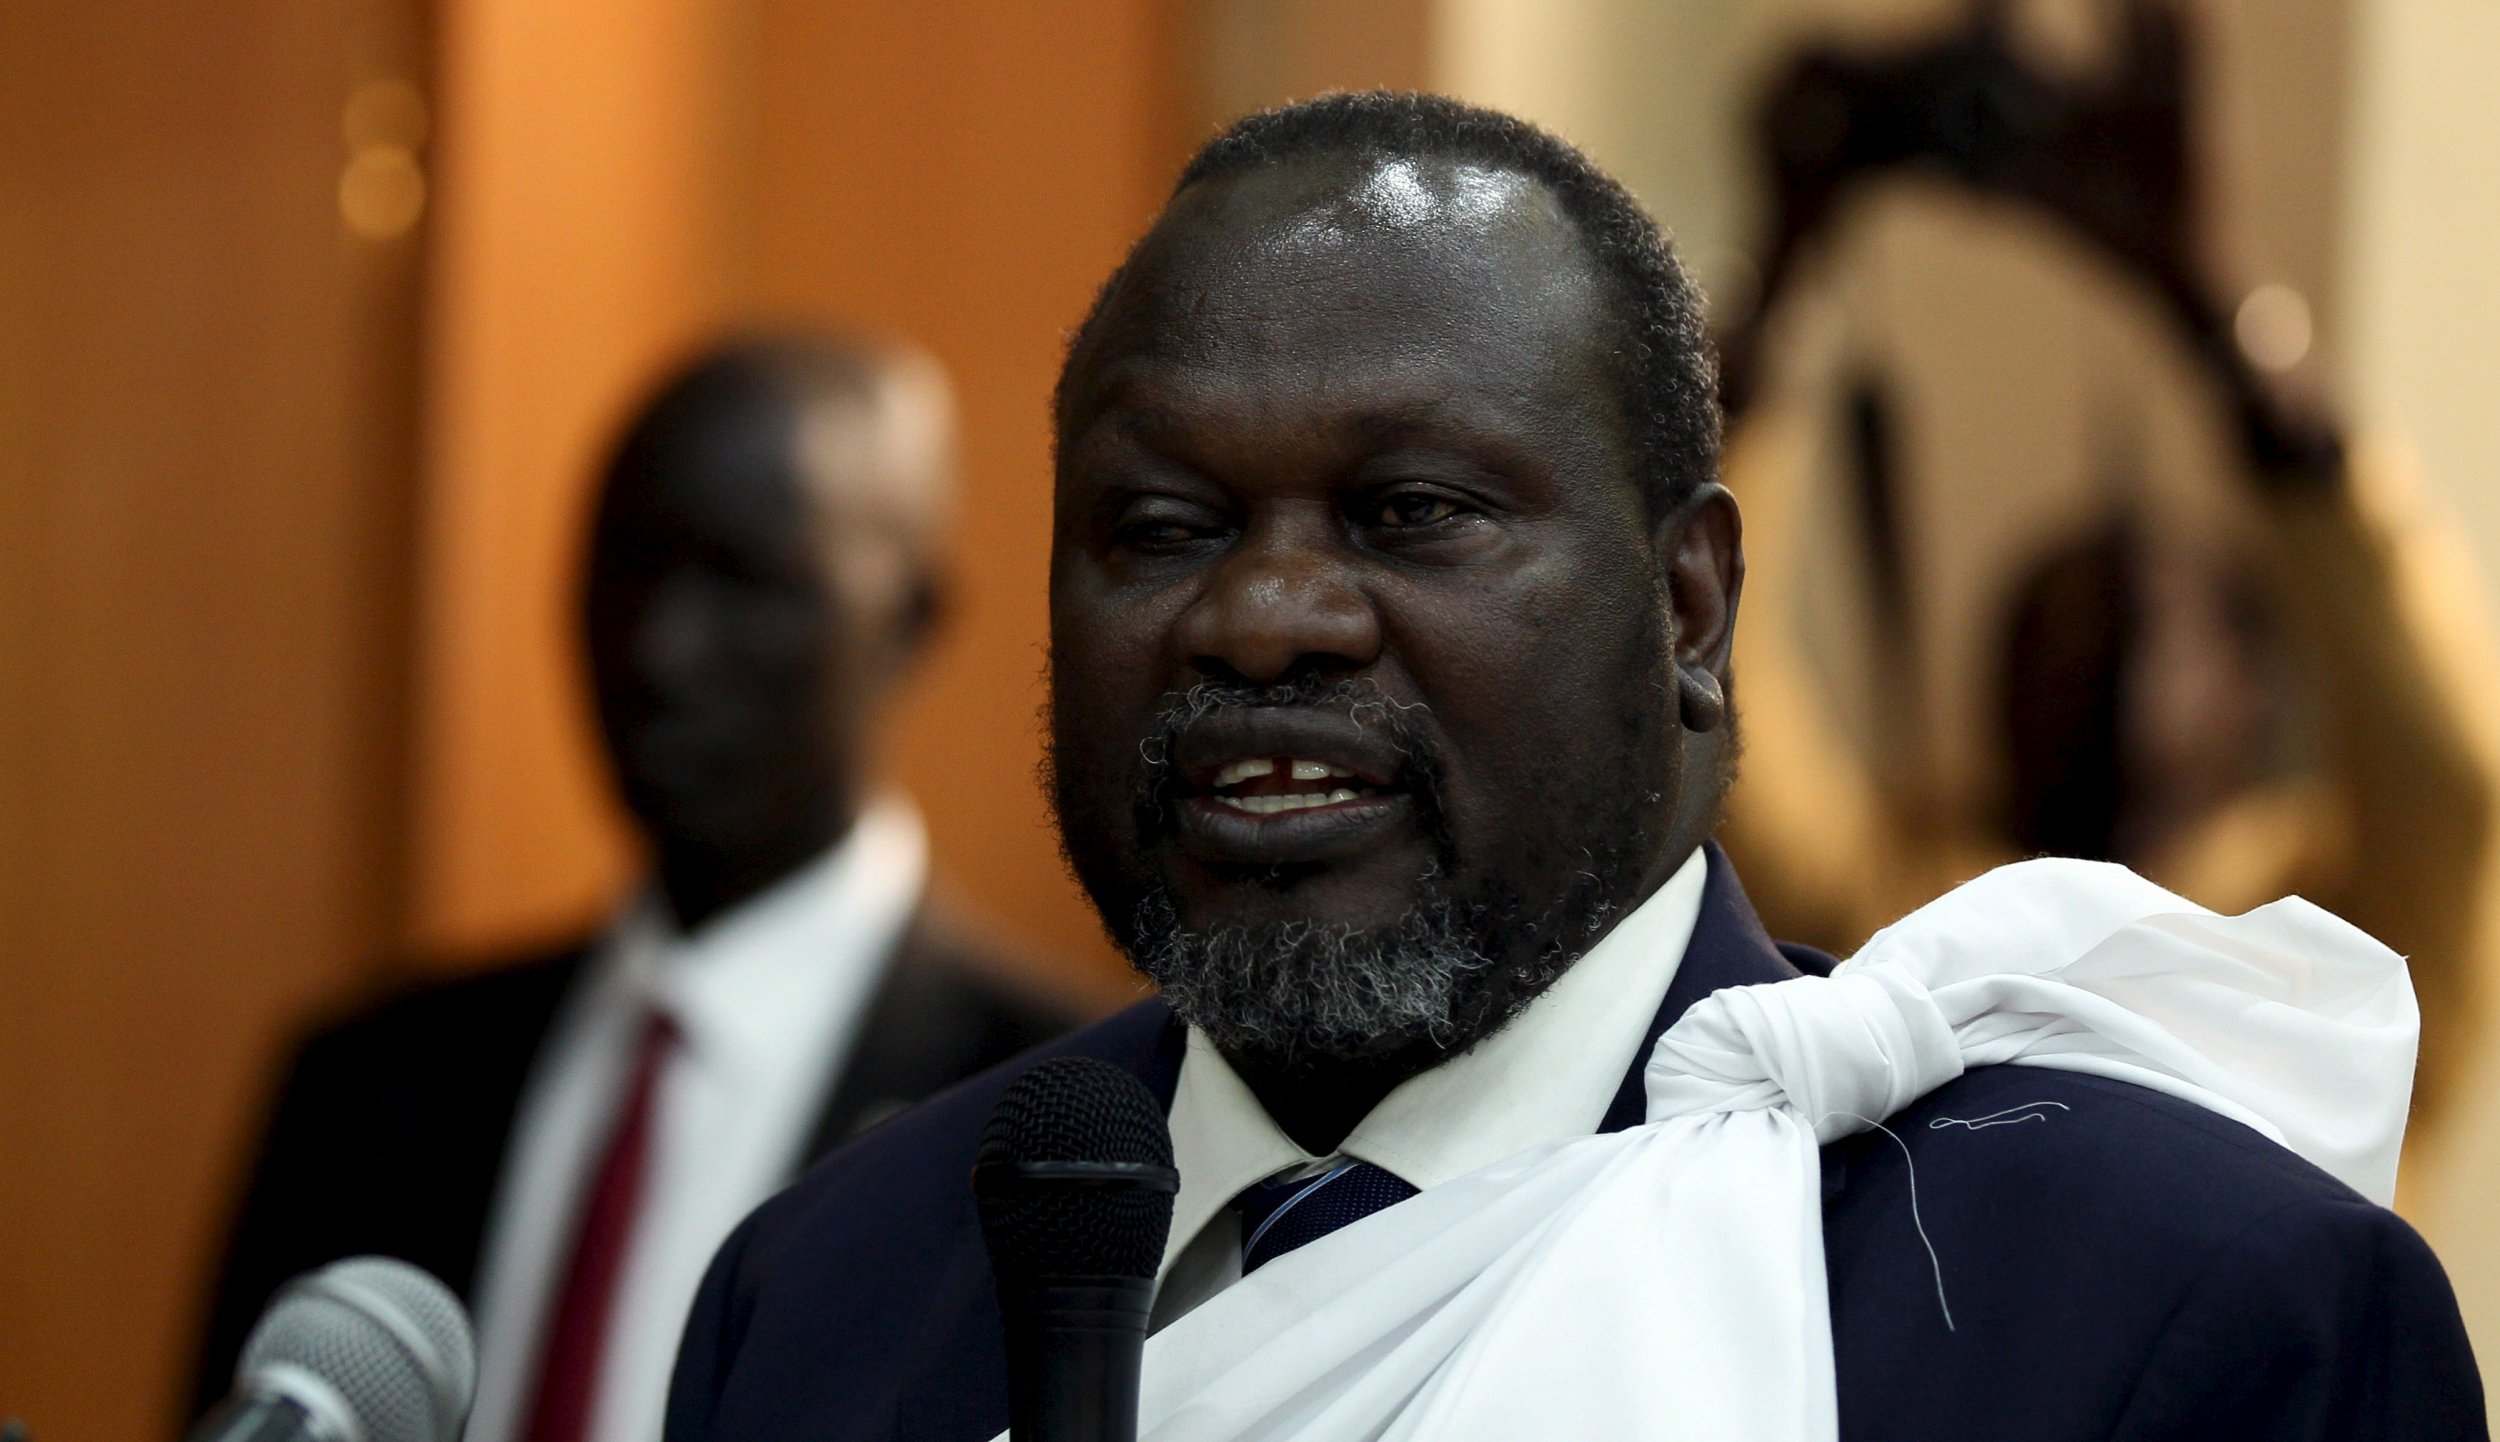 South Sudan's vice president Riek Machar speaks at a briefing.